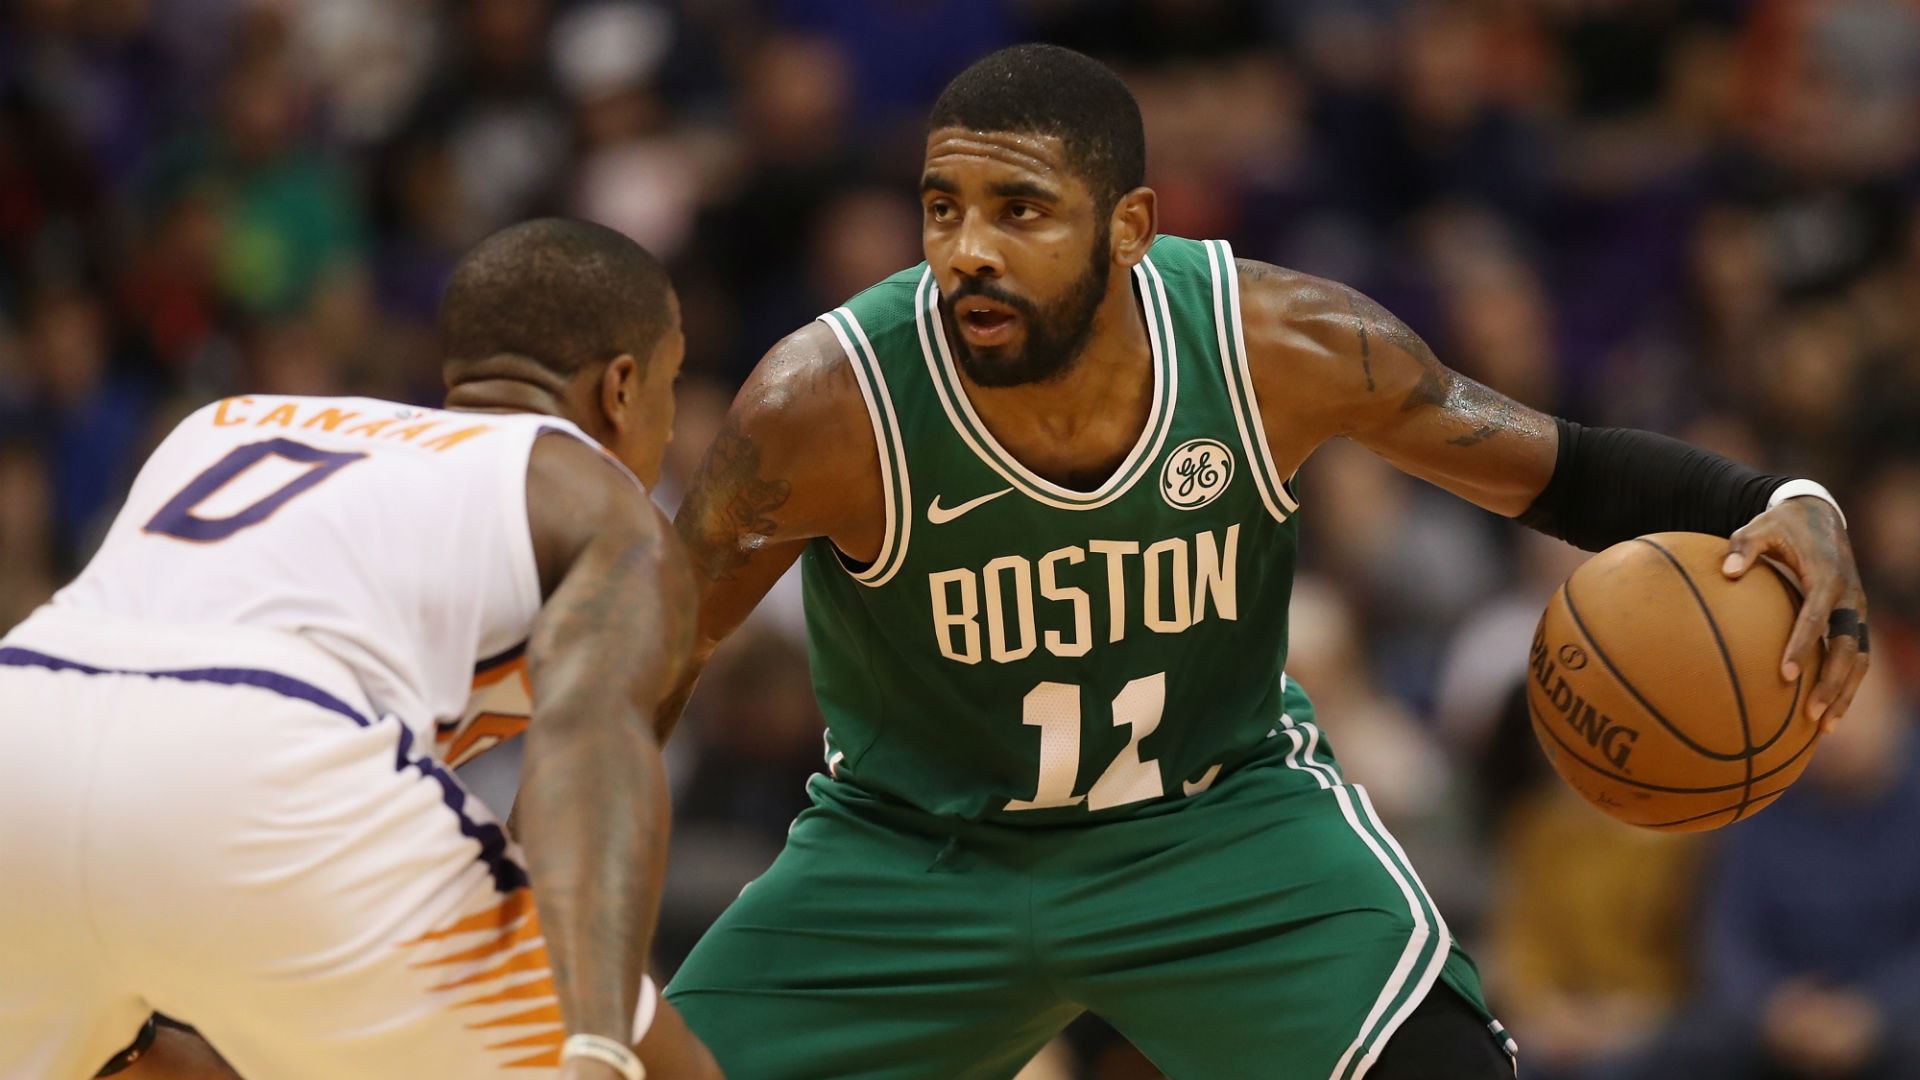 Kyrie Irving praises Celtics' resiliency in stunning 20-point comeback